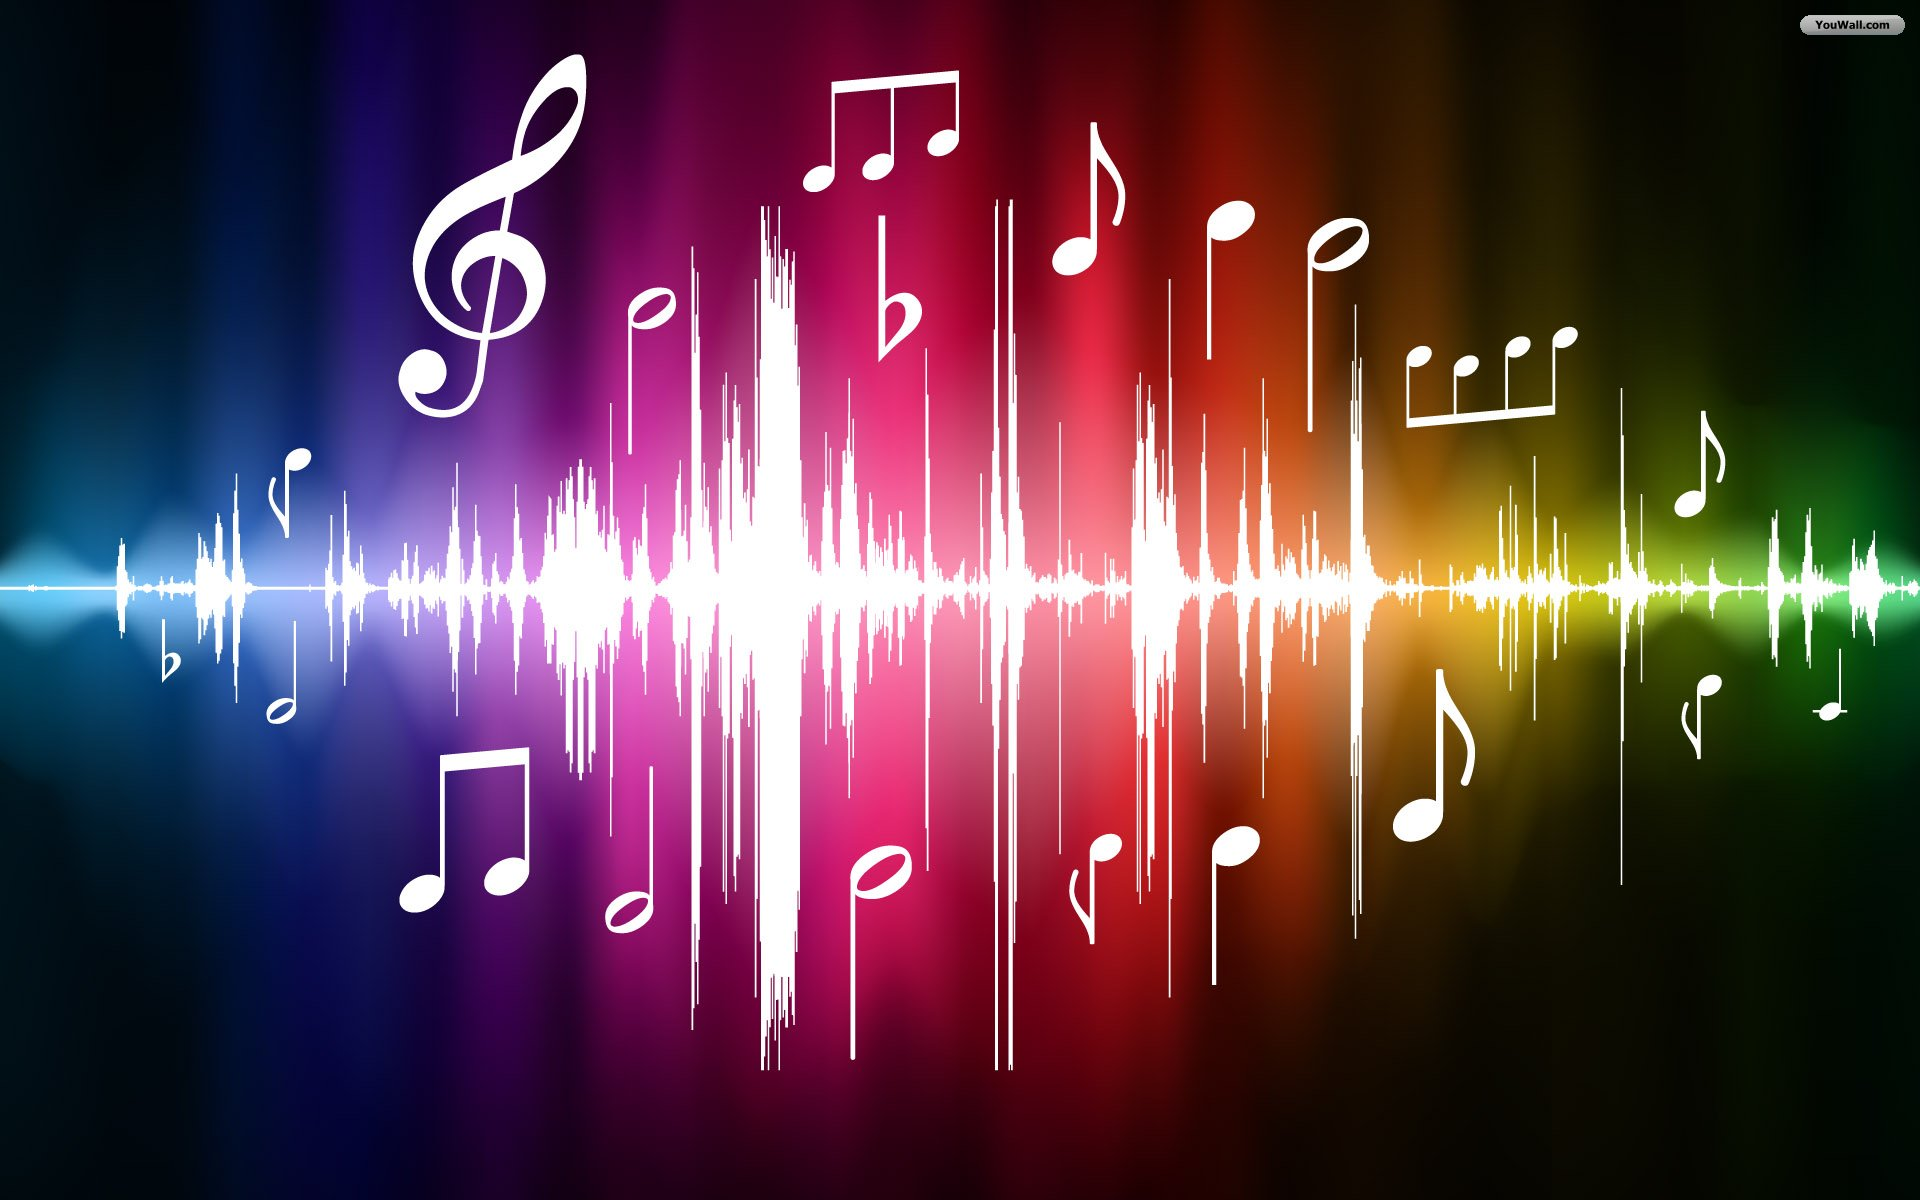 Music cuts across cultures: Certain aspects of our reactions to music universal